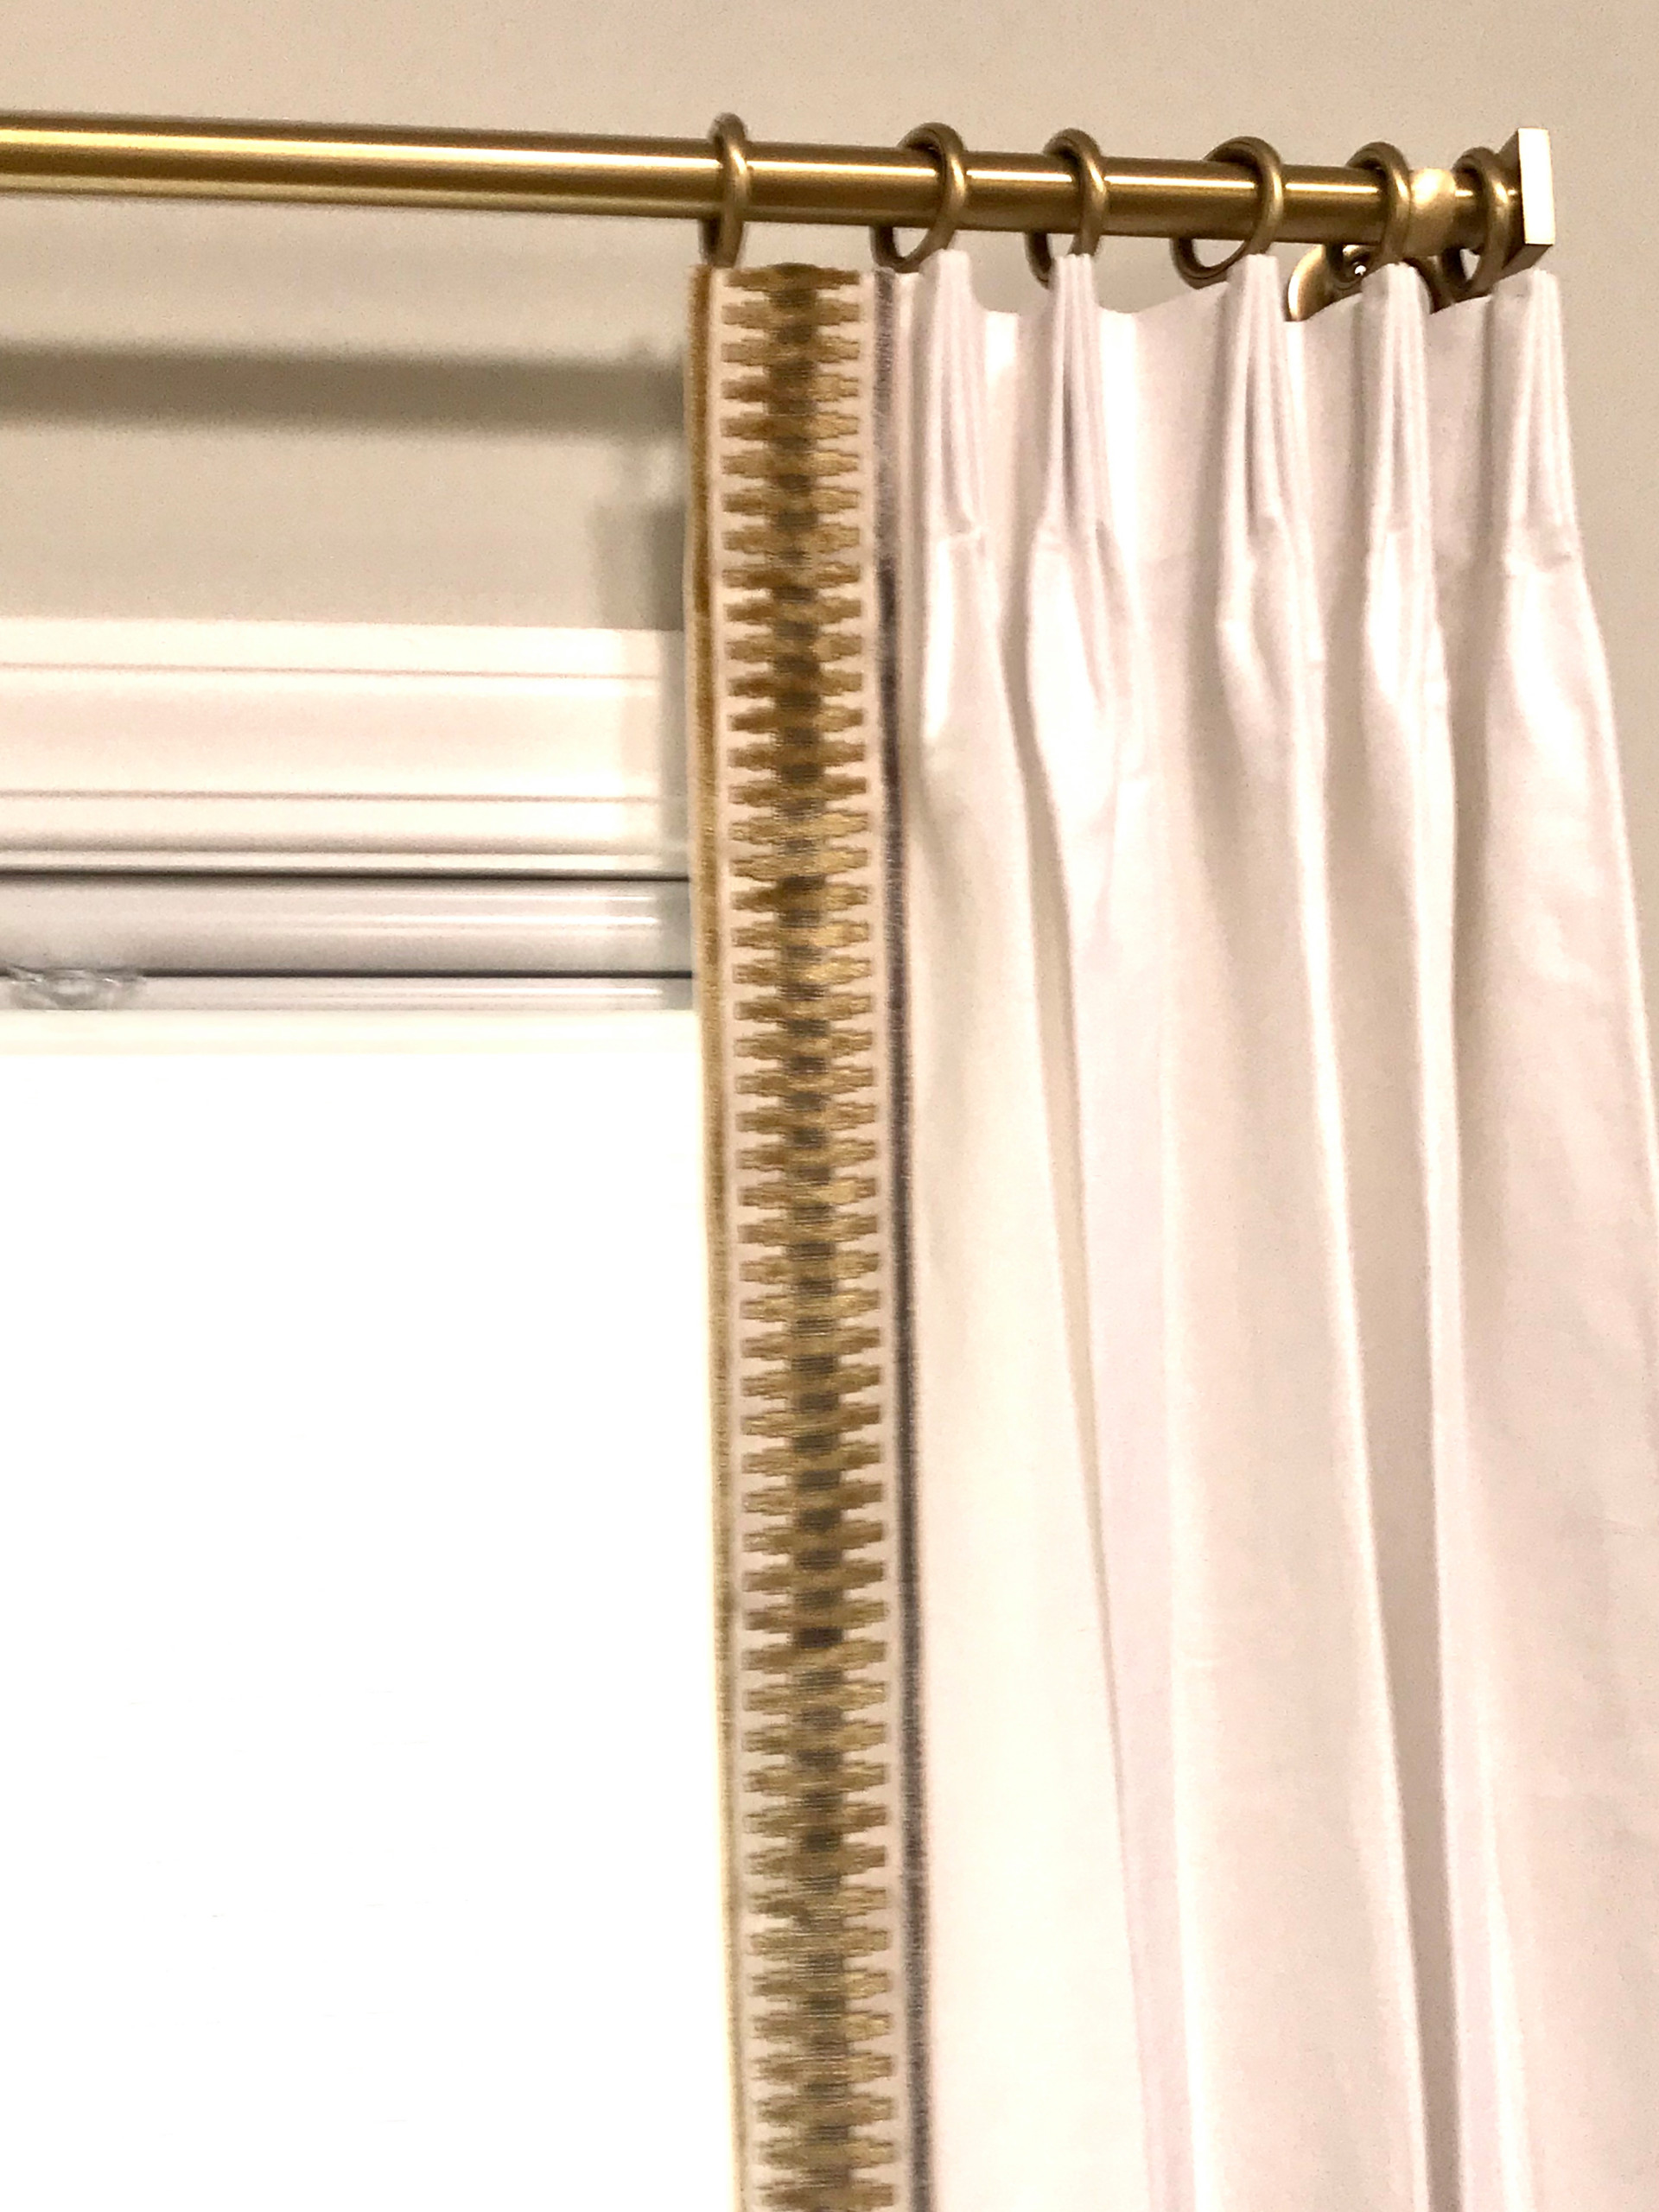 Window Treatments, Curtains, Drapery, Shutters,Shades and Blinds